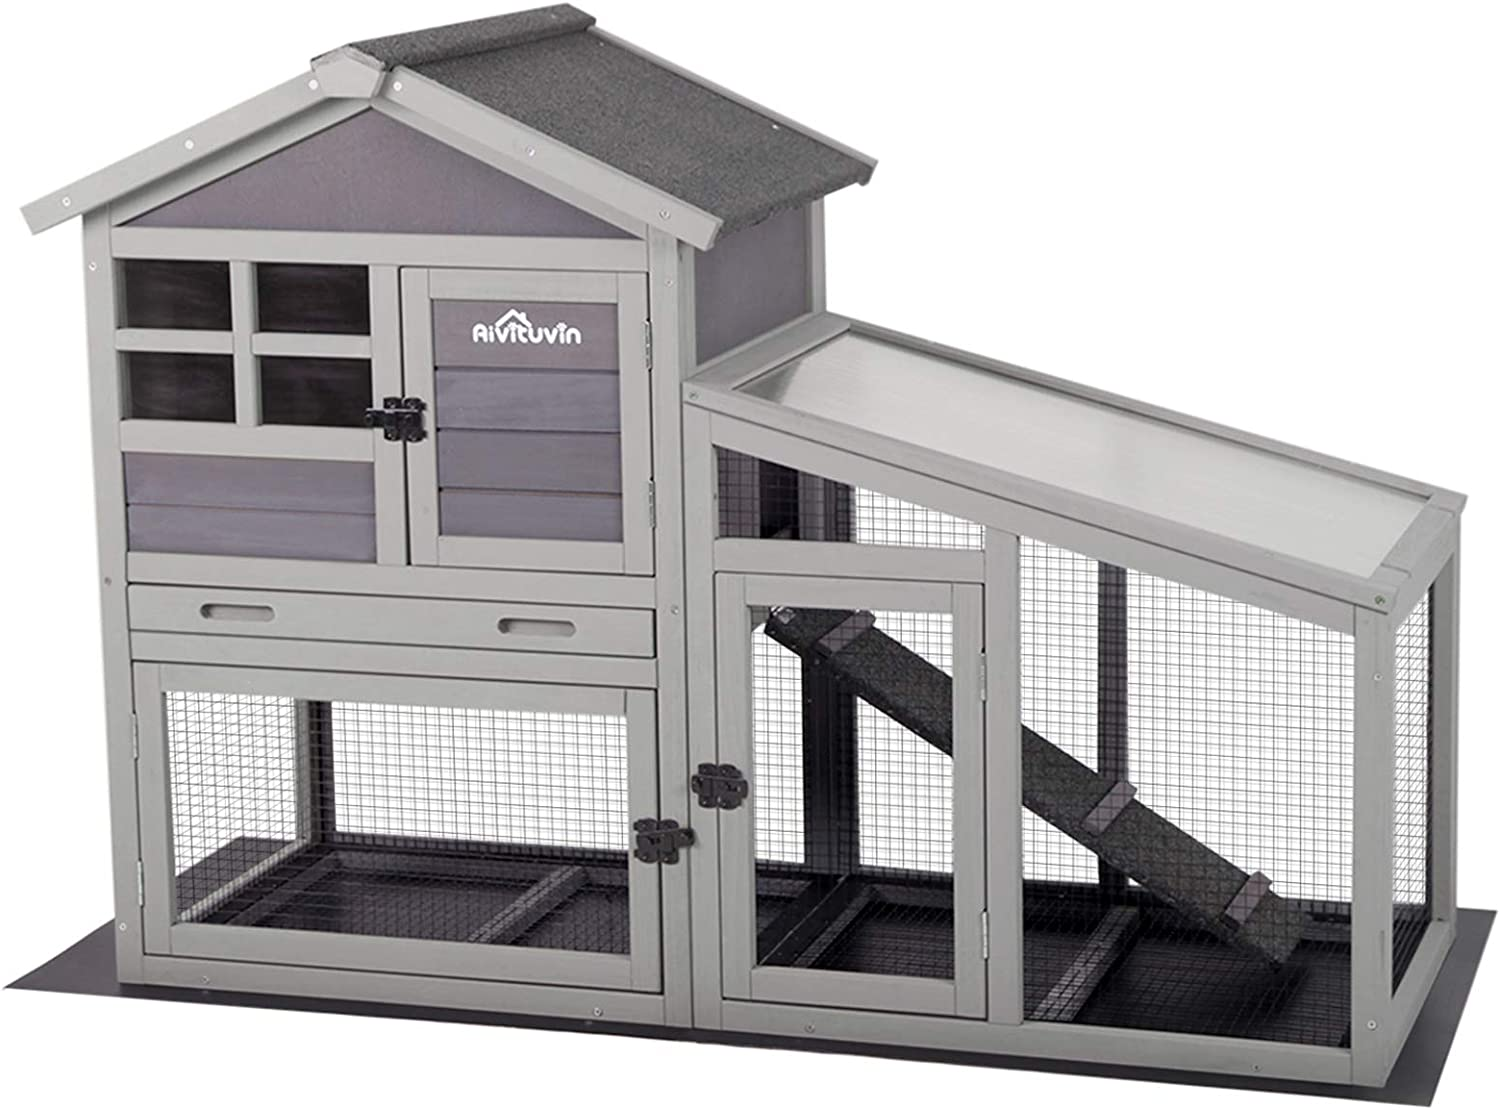 Aivituvin Rabbit Hutch Indoor and Outdoor,Rabbit cage with Deeper No  LeakageTray, Bunny Cage with Removable Bottom Wire Mesh & PVC Layer,  Upgrade ...